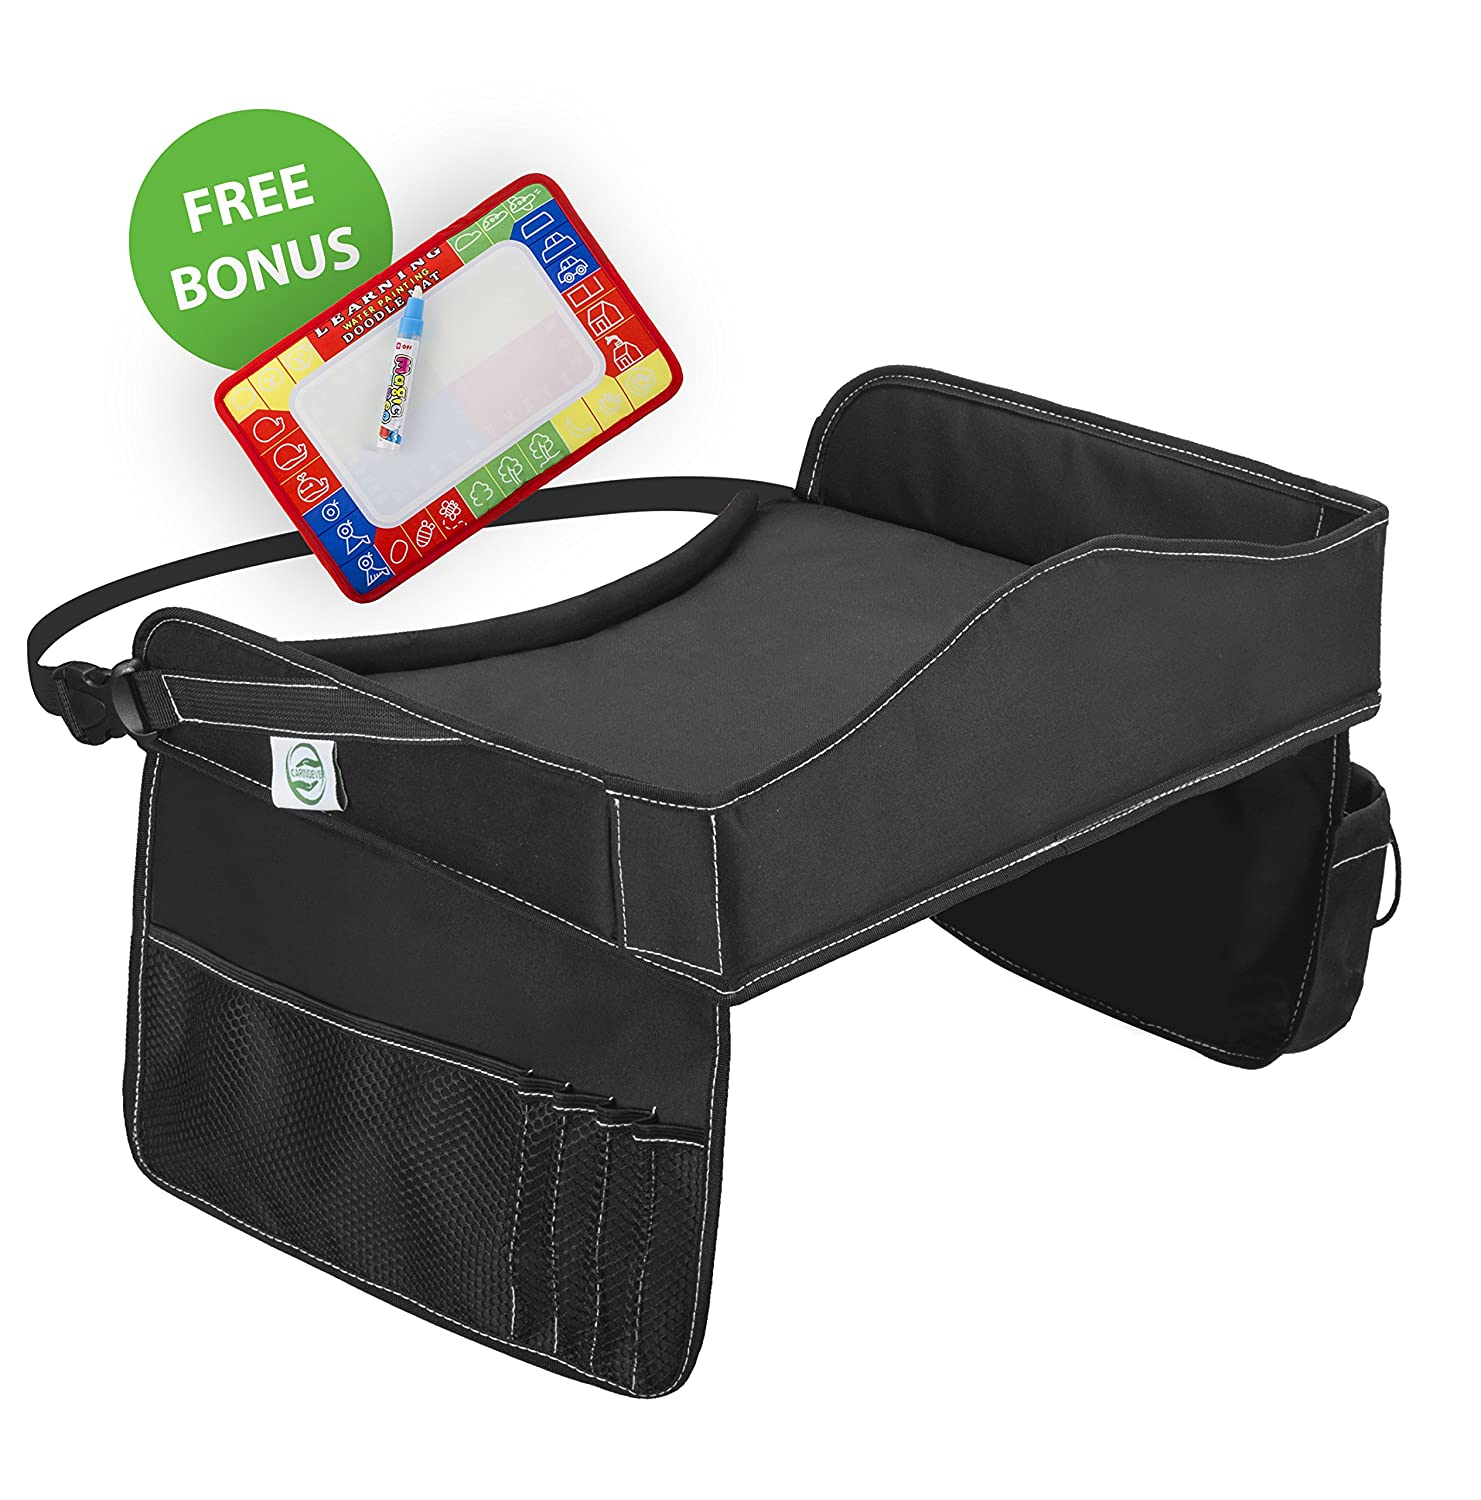 Play Travel Tray W/Mat & Magic Erasable Pen | Ergo Fit, Side Mesh Pockets, Portable W/Adjustable Straps | Kid Play Tray, Play Tray Kids, Play Tray for Kids, Car Drawing Board, Travel Play Tray CaringEver